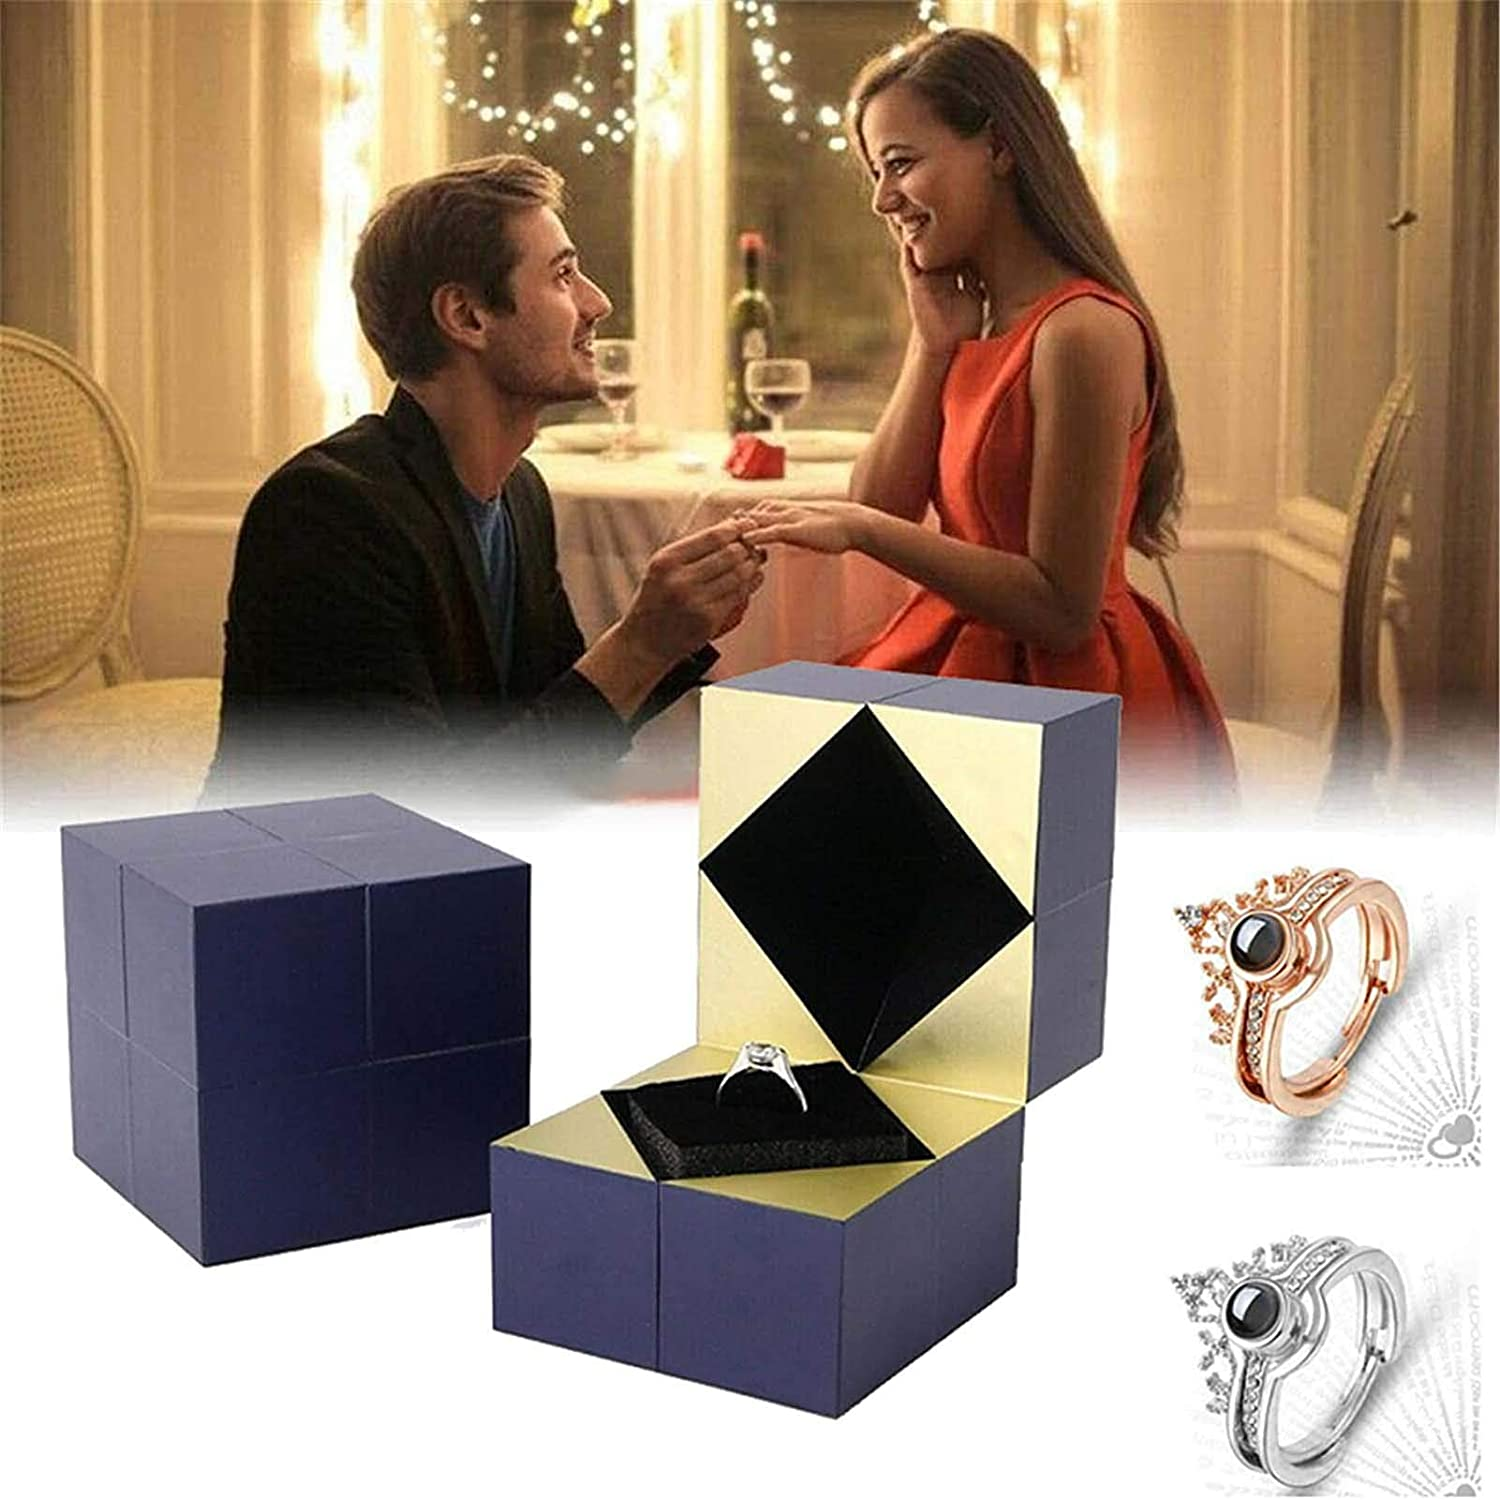 Oro Juyuntong 3Pcs Creative Ring Bracelet and Puzzle Jewelry Box I Love You Projection Ring in 100 Languages Magic Puzzle Ring Box Rotating Storage Box Jewelry Gift for Girlfriend